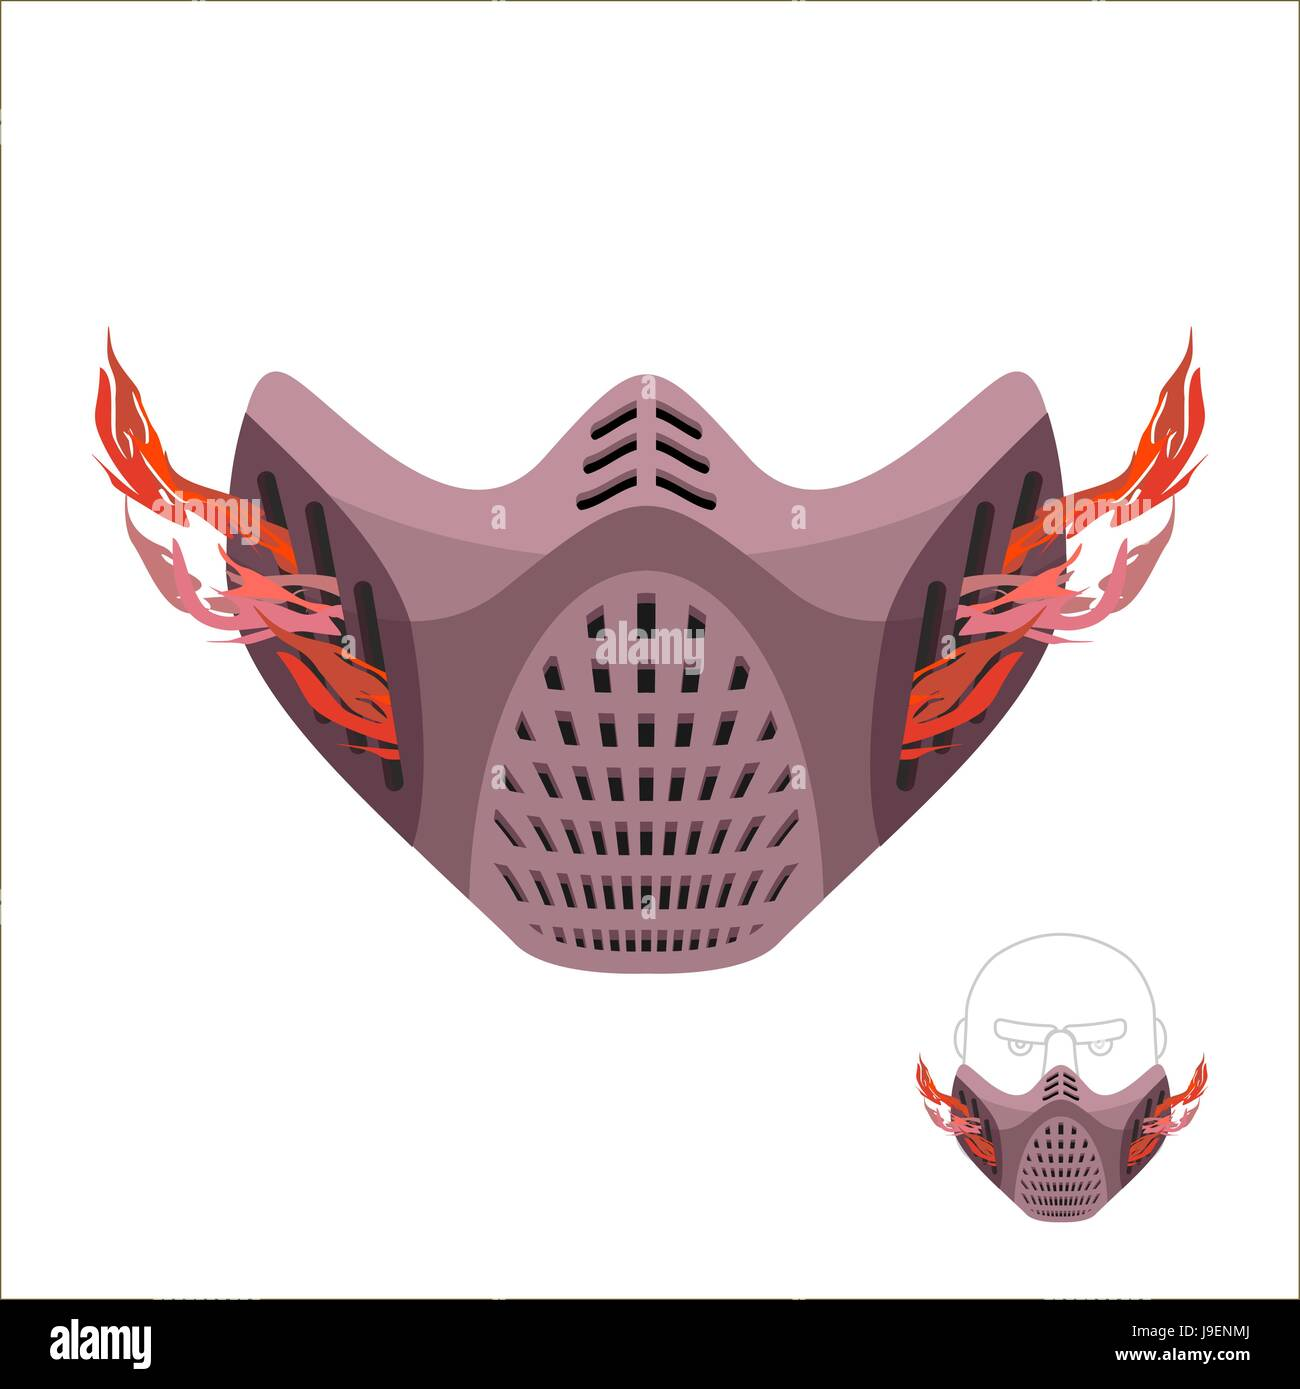 Protective sports mask. Scary Monster mask or maniac with fire. Vector illustration - Stock Image